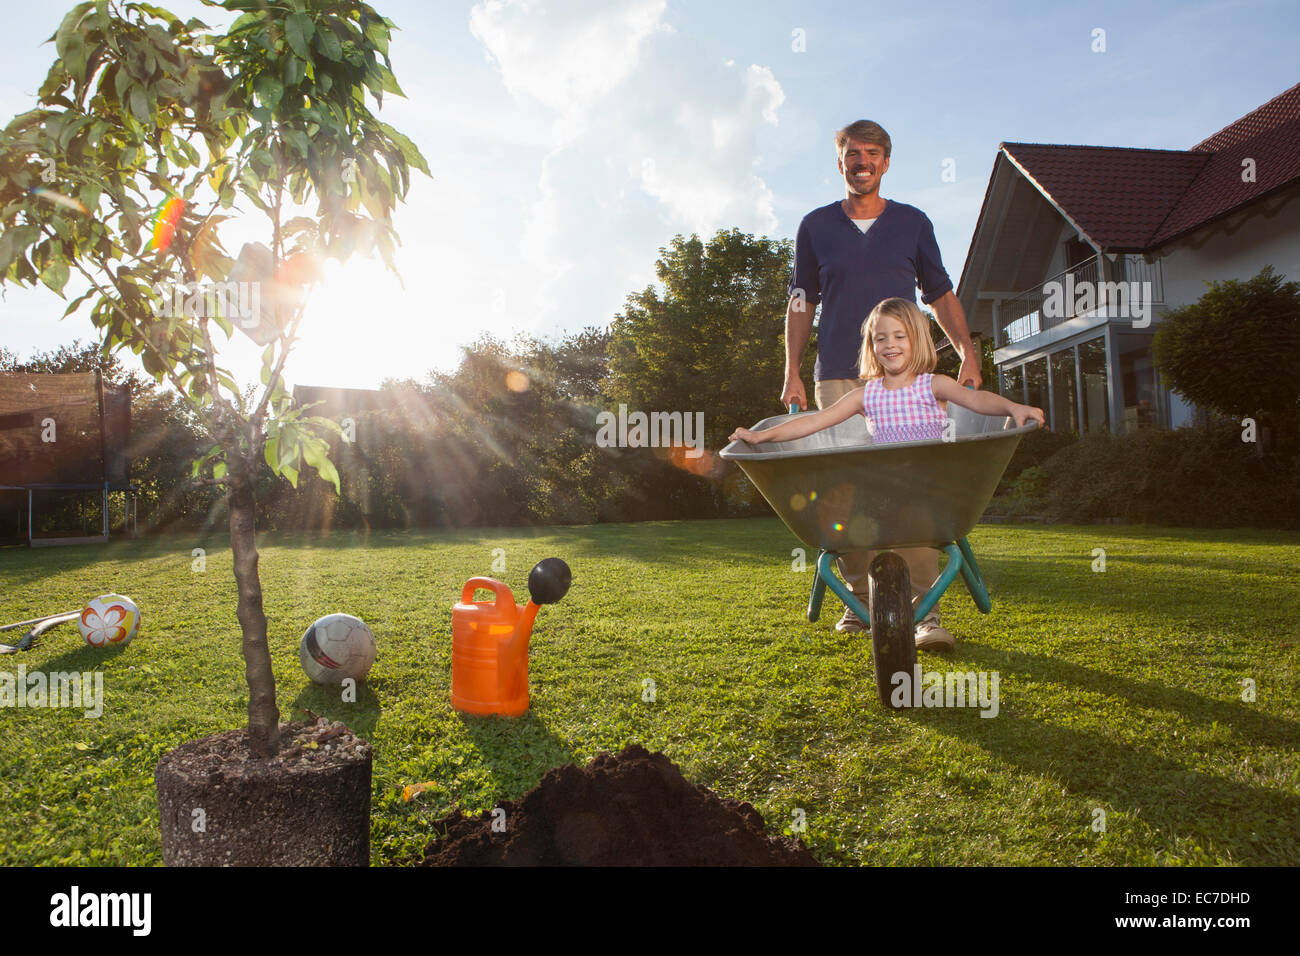 Father with daughter in wheelbarrow planting tree in garden - Stock Image